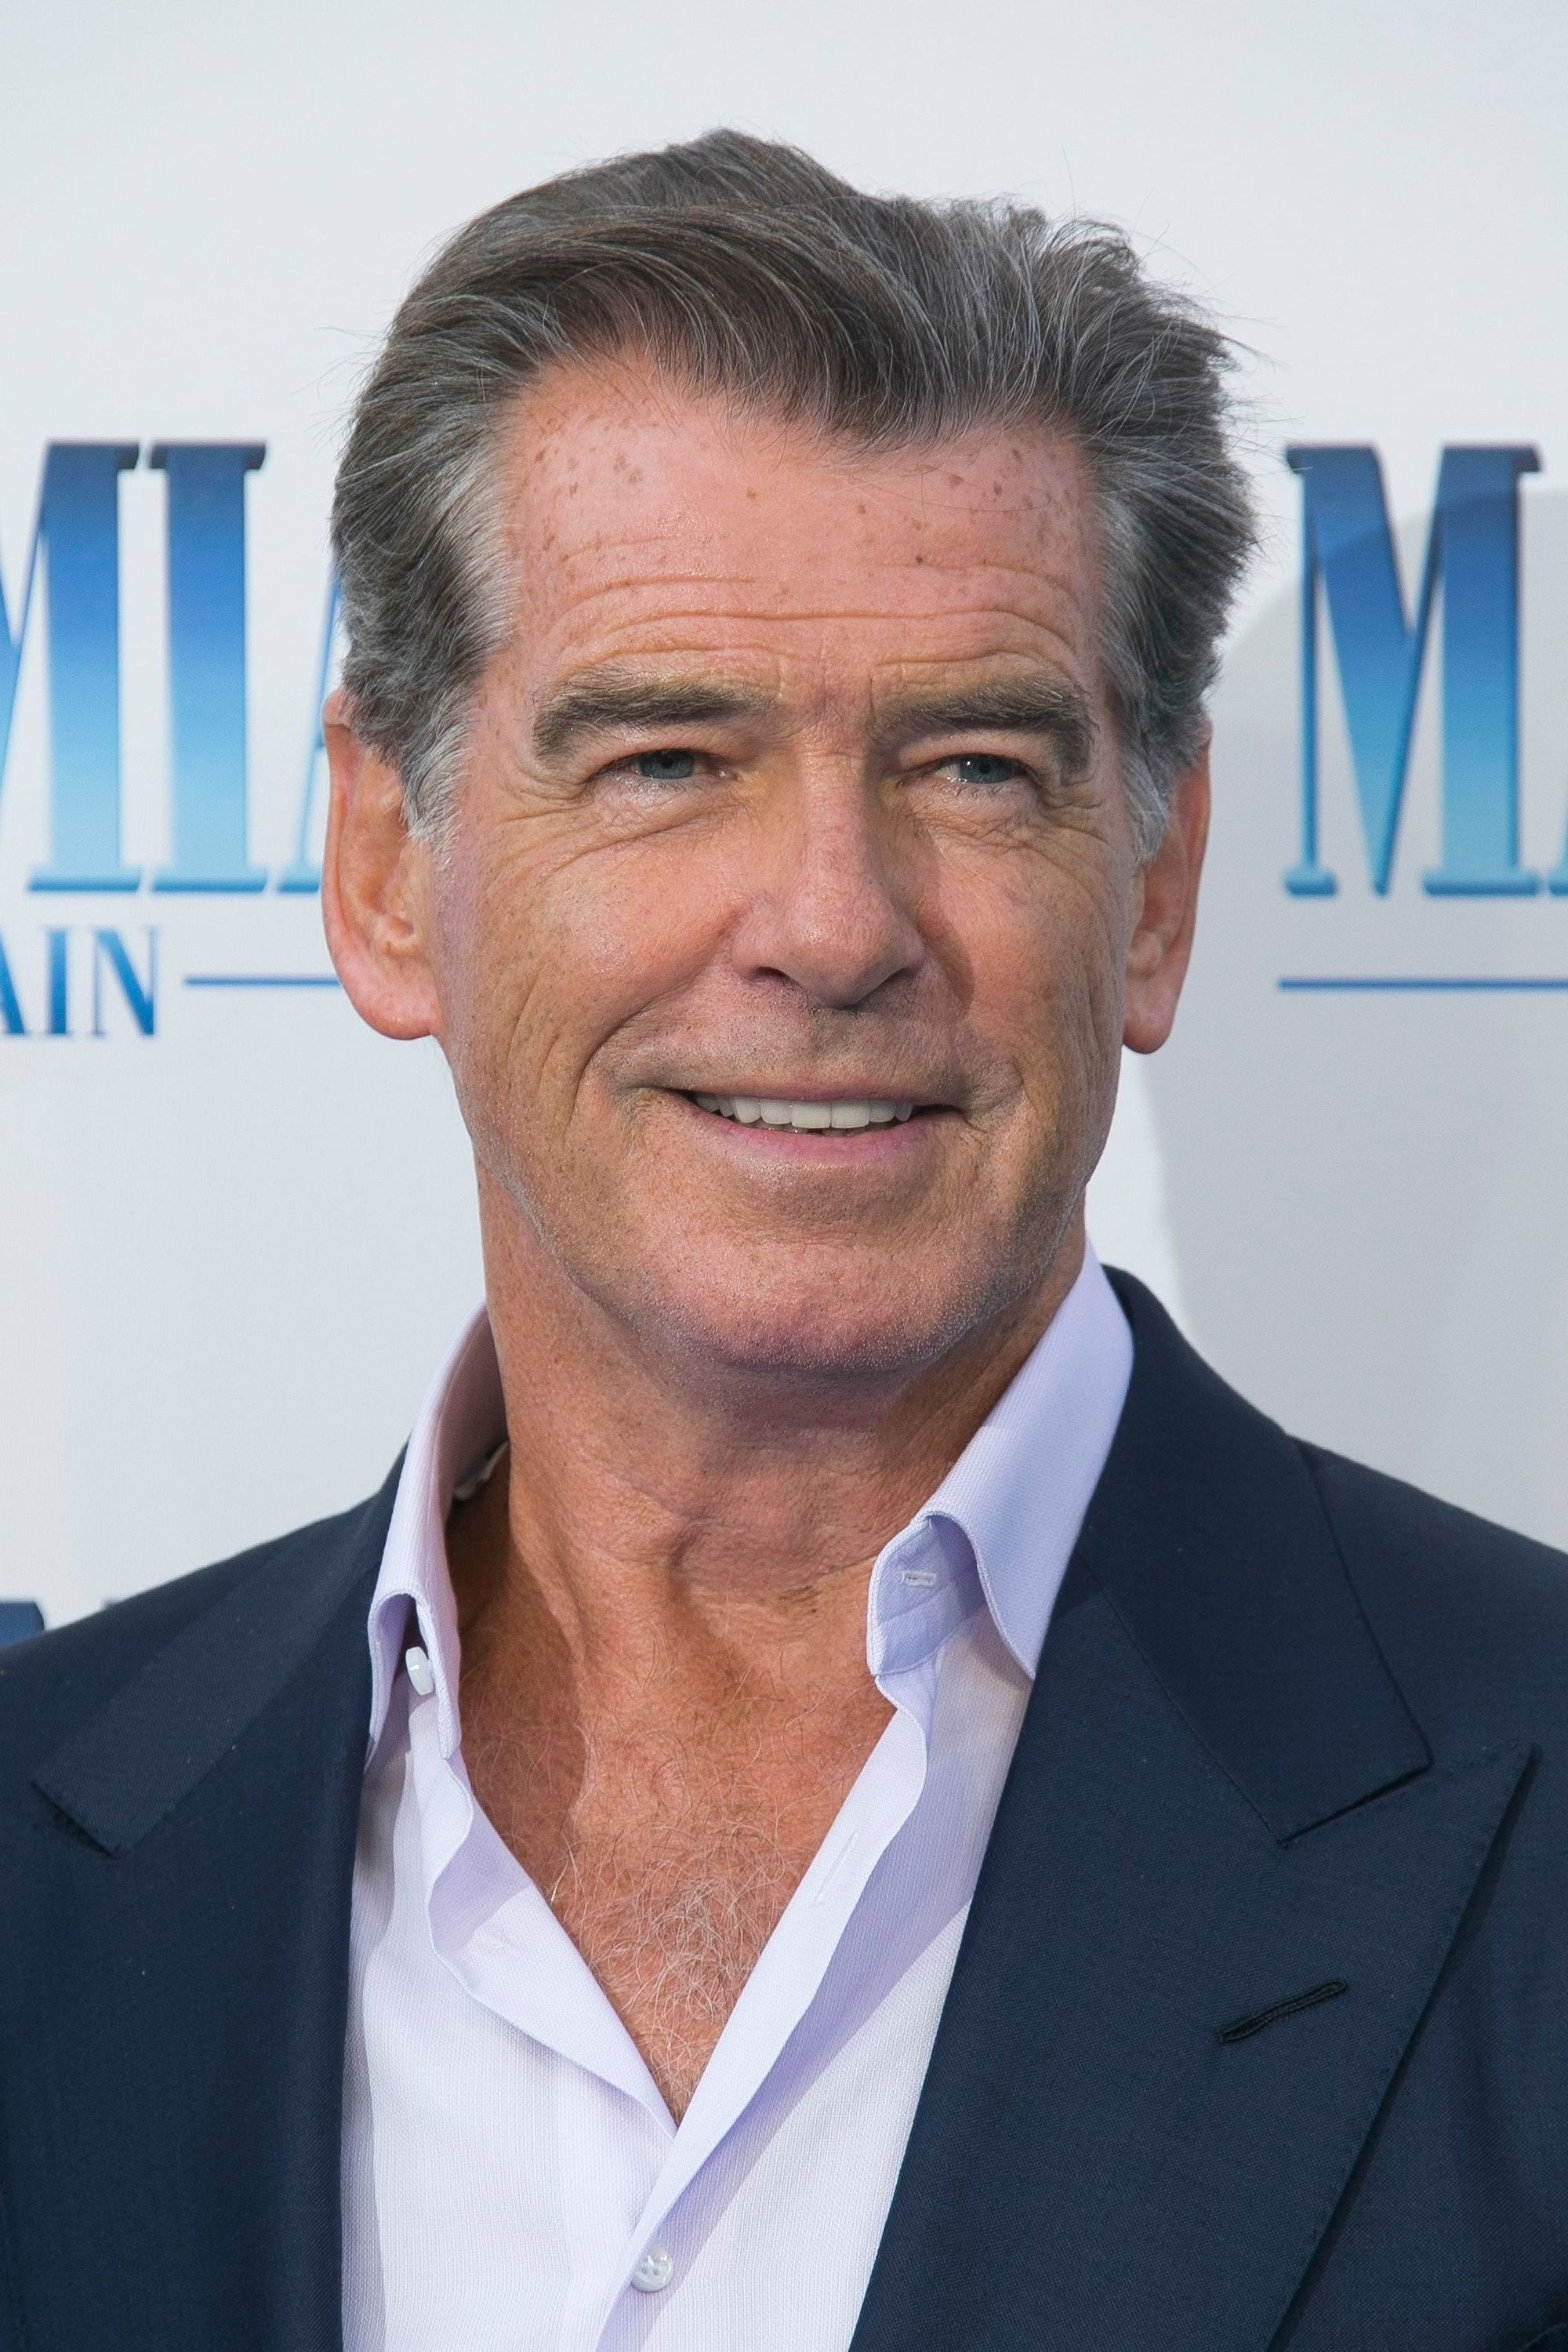 Hairstyles for men over 50: Pierce Brosnan with grey short hair swept back wearing a relaxed blue suit at Mamma Mia premiere.